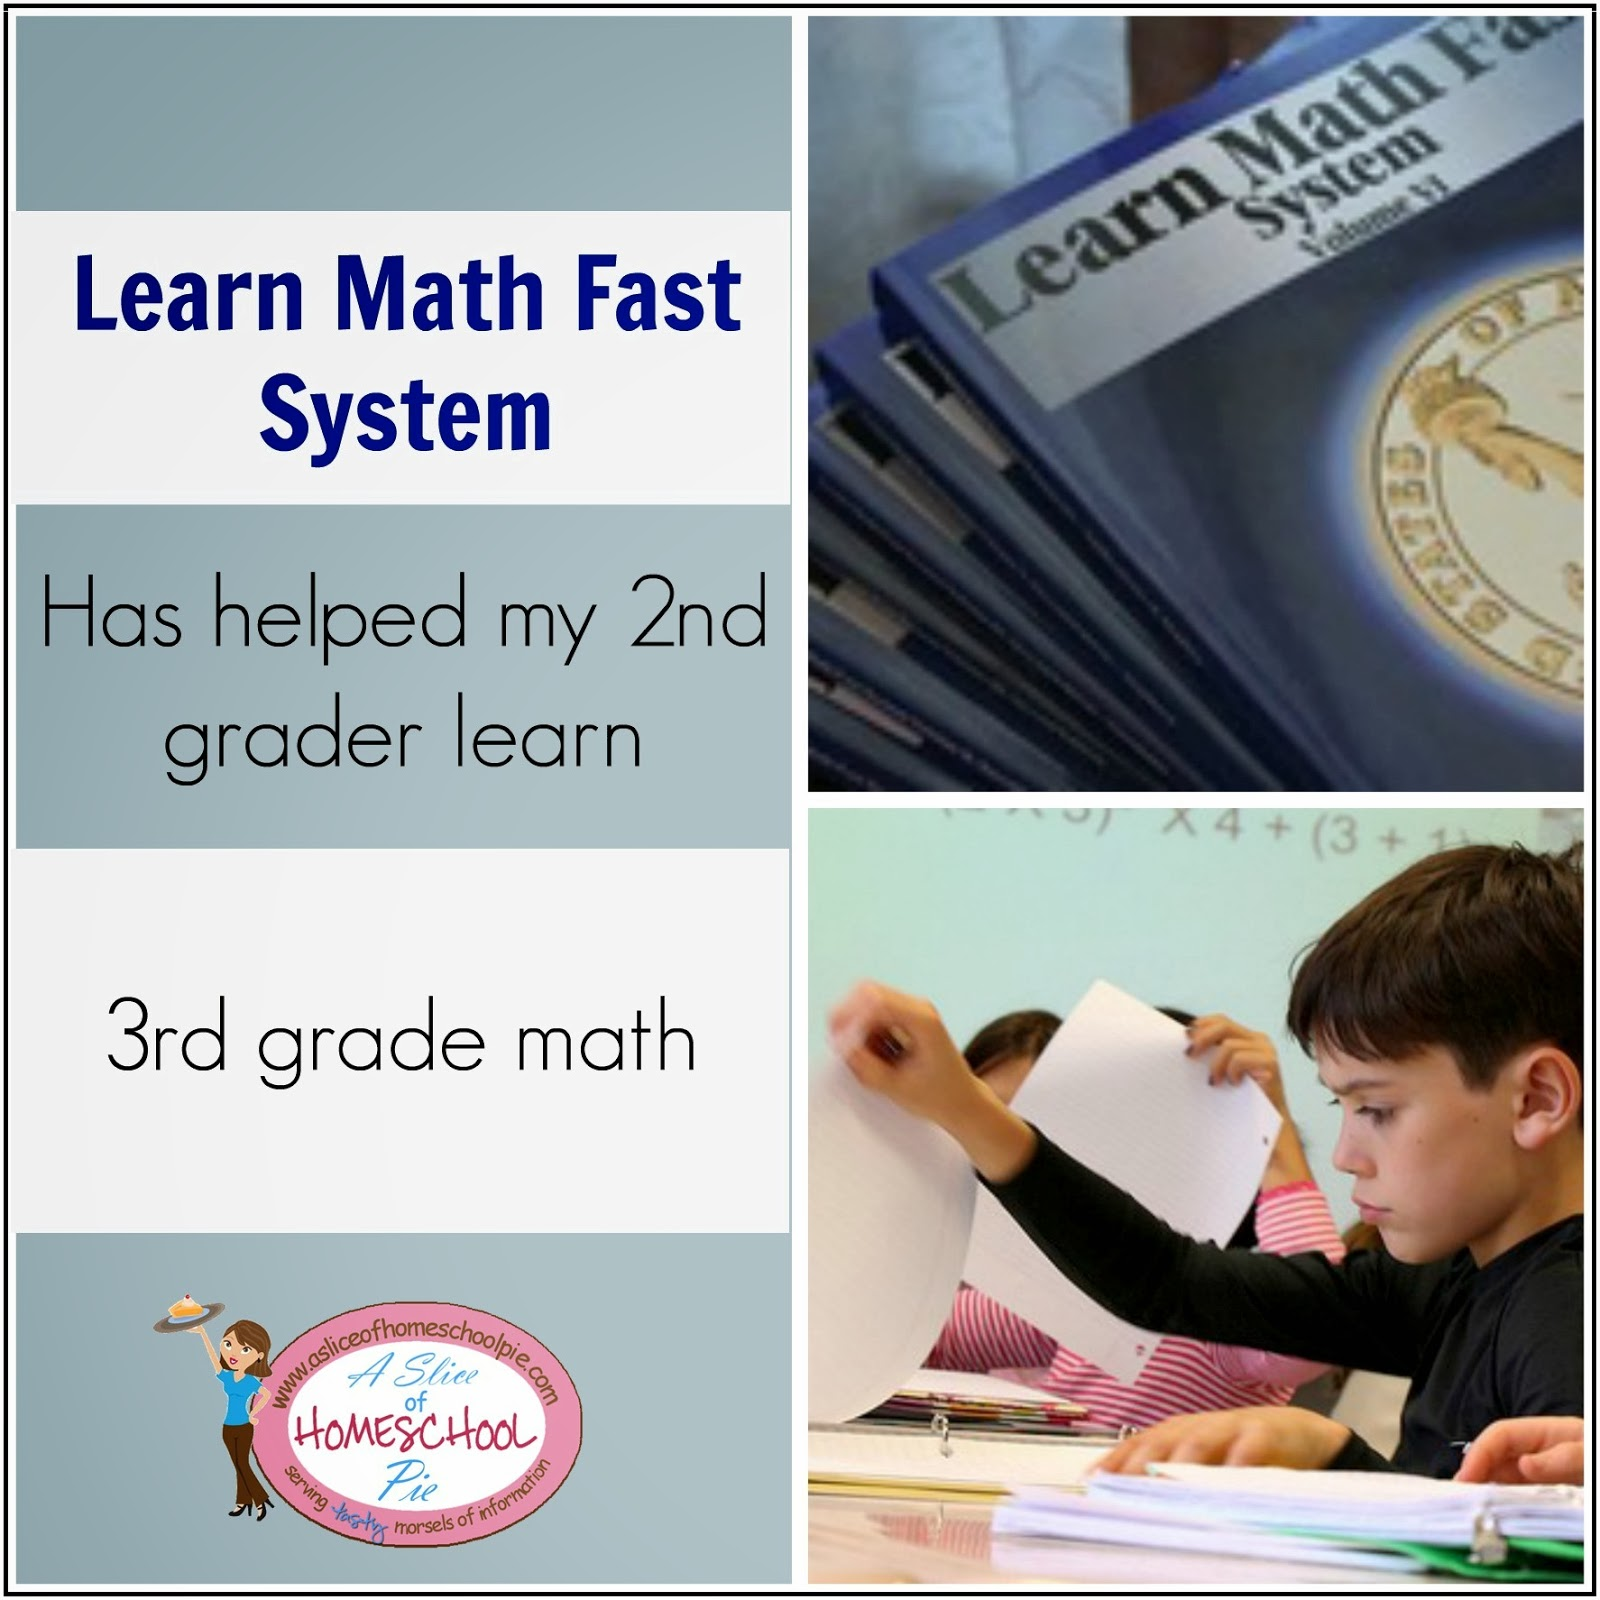 2nd Grader completing 3rd grade level math thanks to the Learn Math Fast System #math #homeschool #curriculum